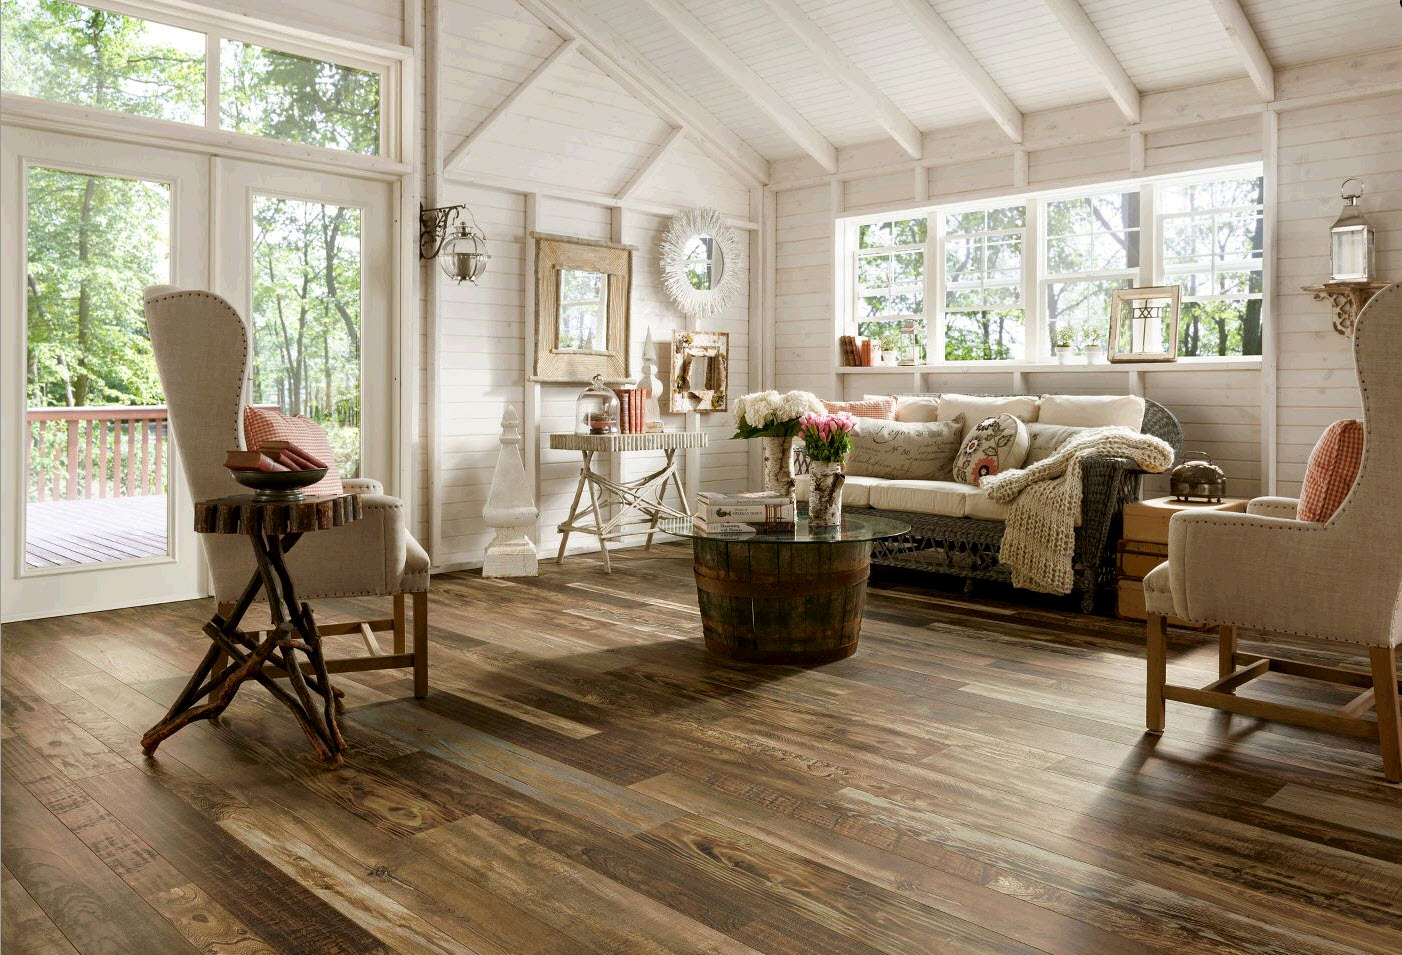 Rustic Living Room using Wood Laminate Flooring under Wicker Sofa and Cozy Wingchairs near Round Table